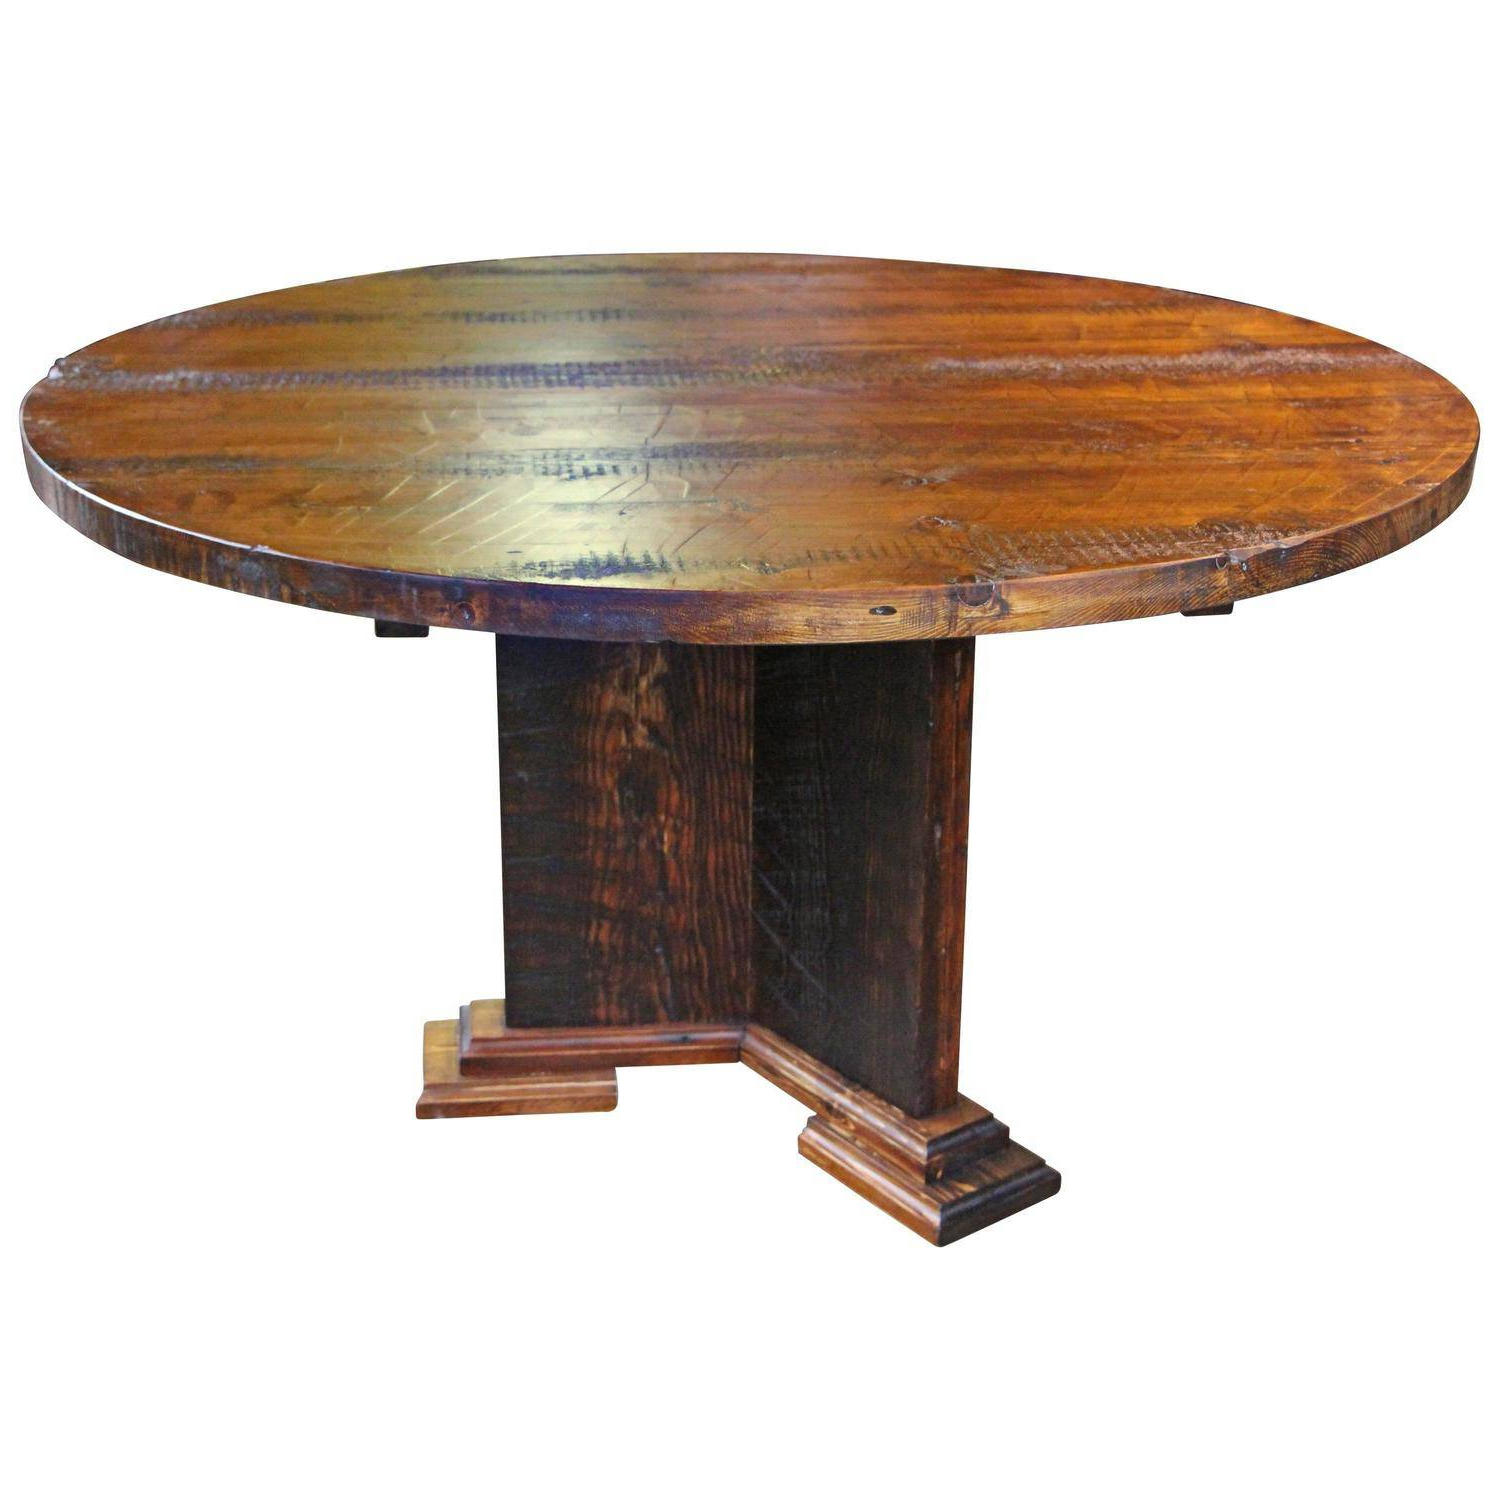 Trendy Rustic Pine Small Dining Tables Inside Pretty Round Reclaimed Wood Semi Rustic Pine Dining Table (Gallery 11 of 30)